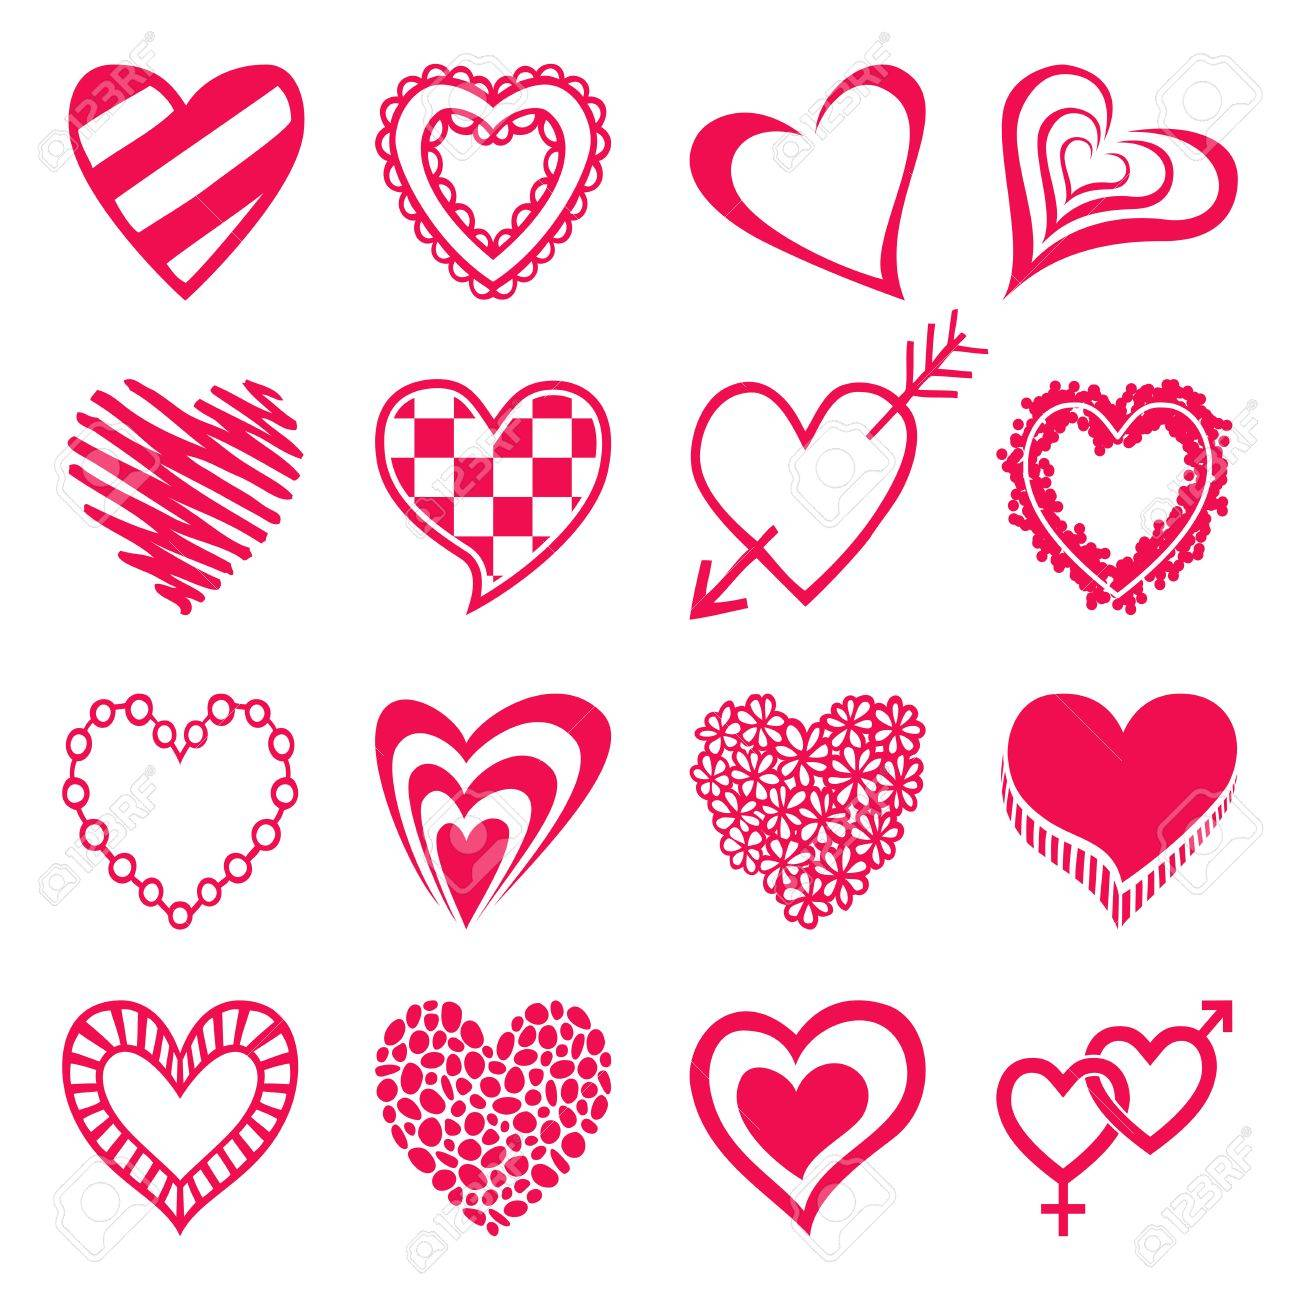 Set Of Heart Shaped Icons Design Elements For Valentines Day